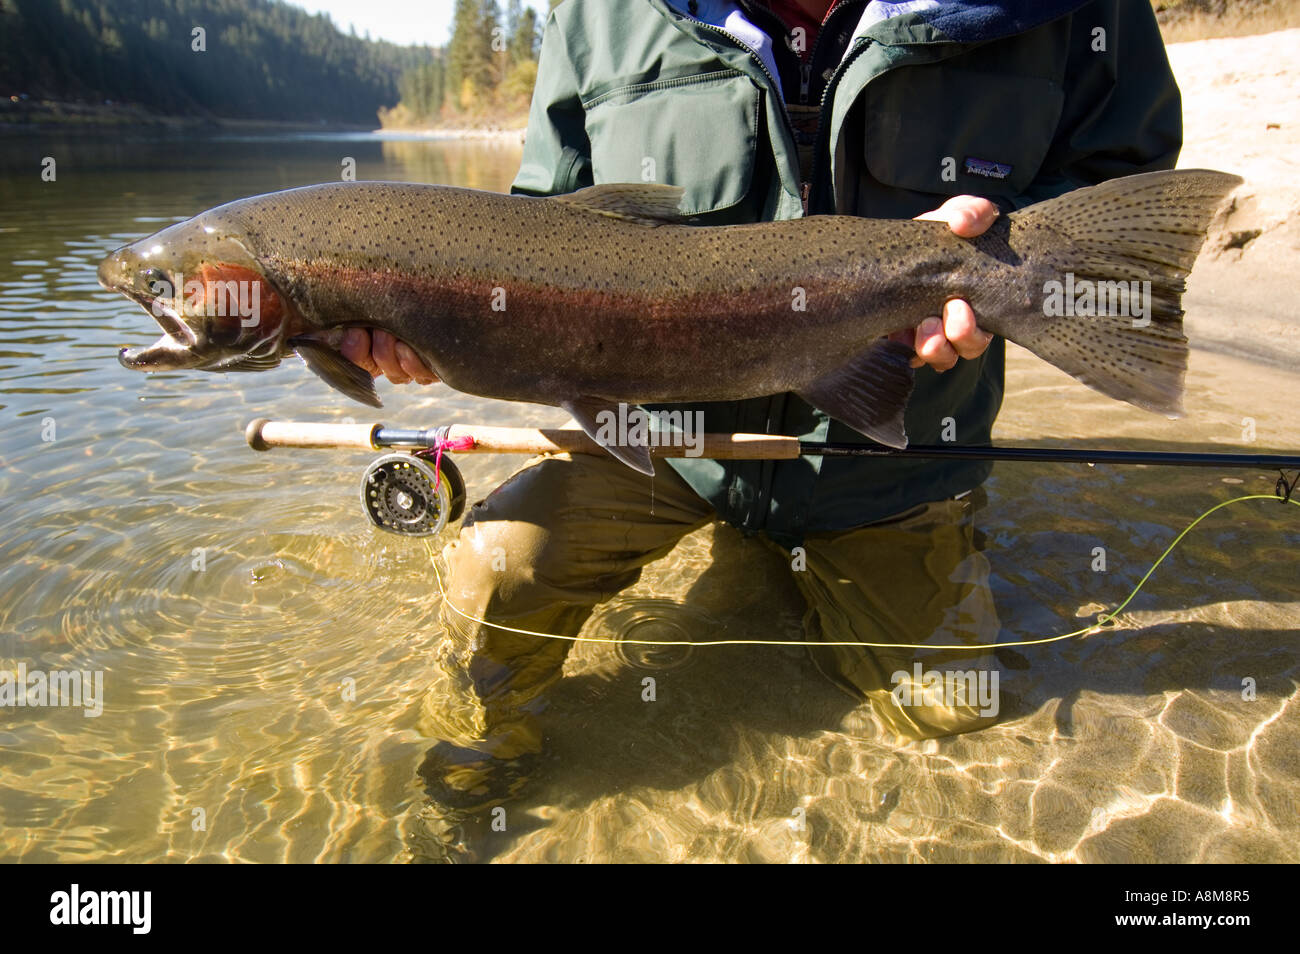 USA IDAHO Fisherman releasing large Steelhead Rainbow Trout on the Clearwater river - Stock Image